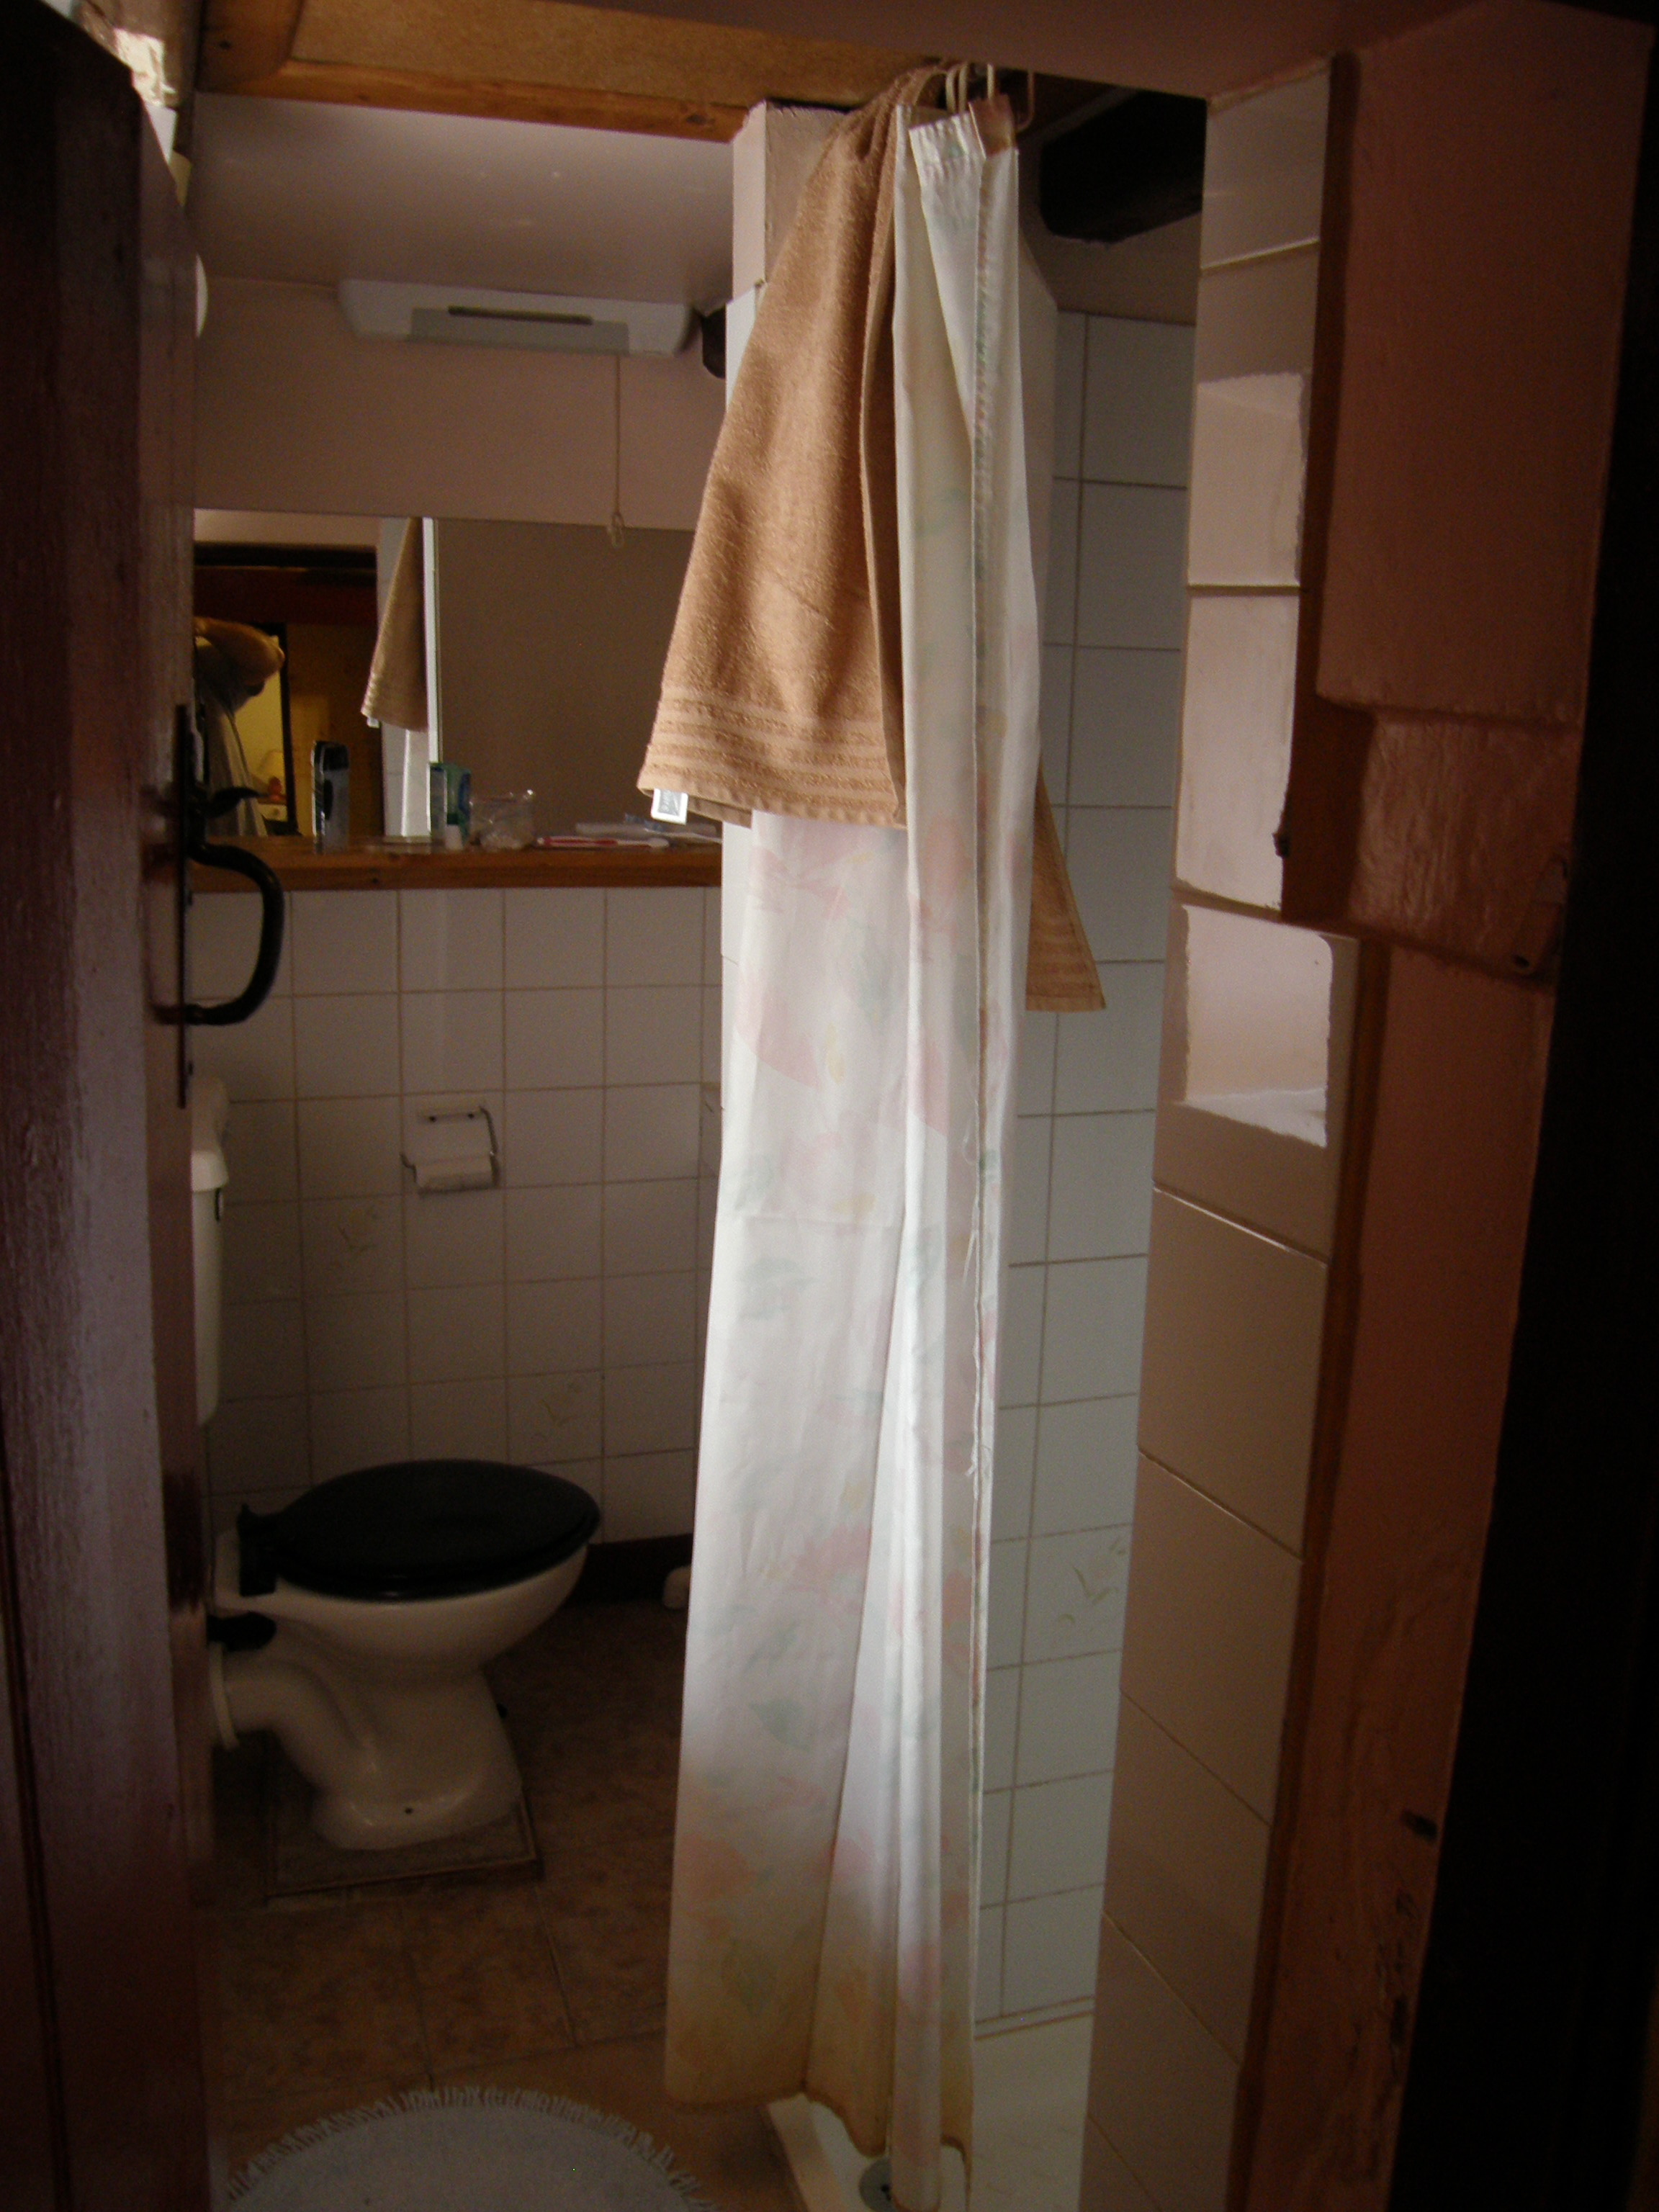 A very small bathroom, a converted pantry; indoor plumbing came in 1940